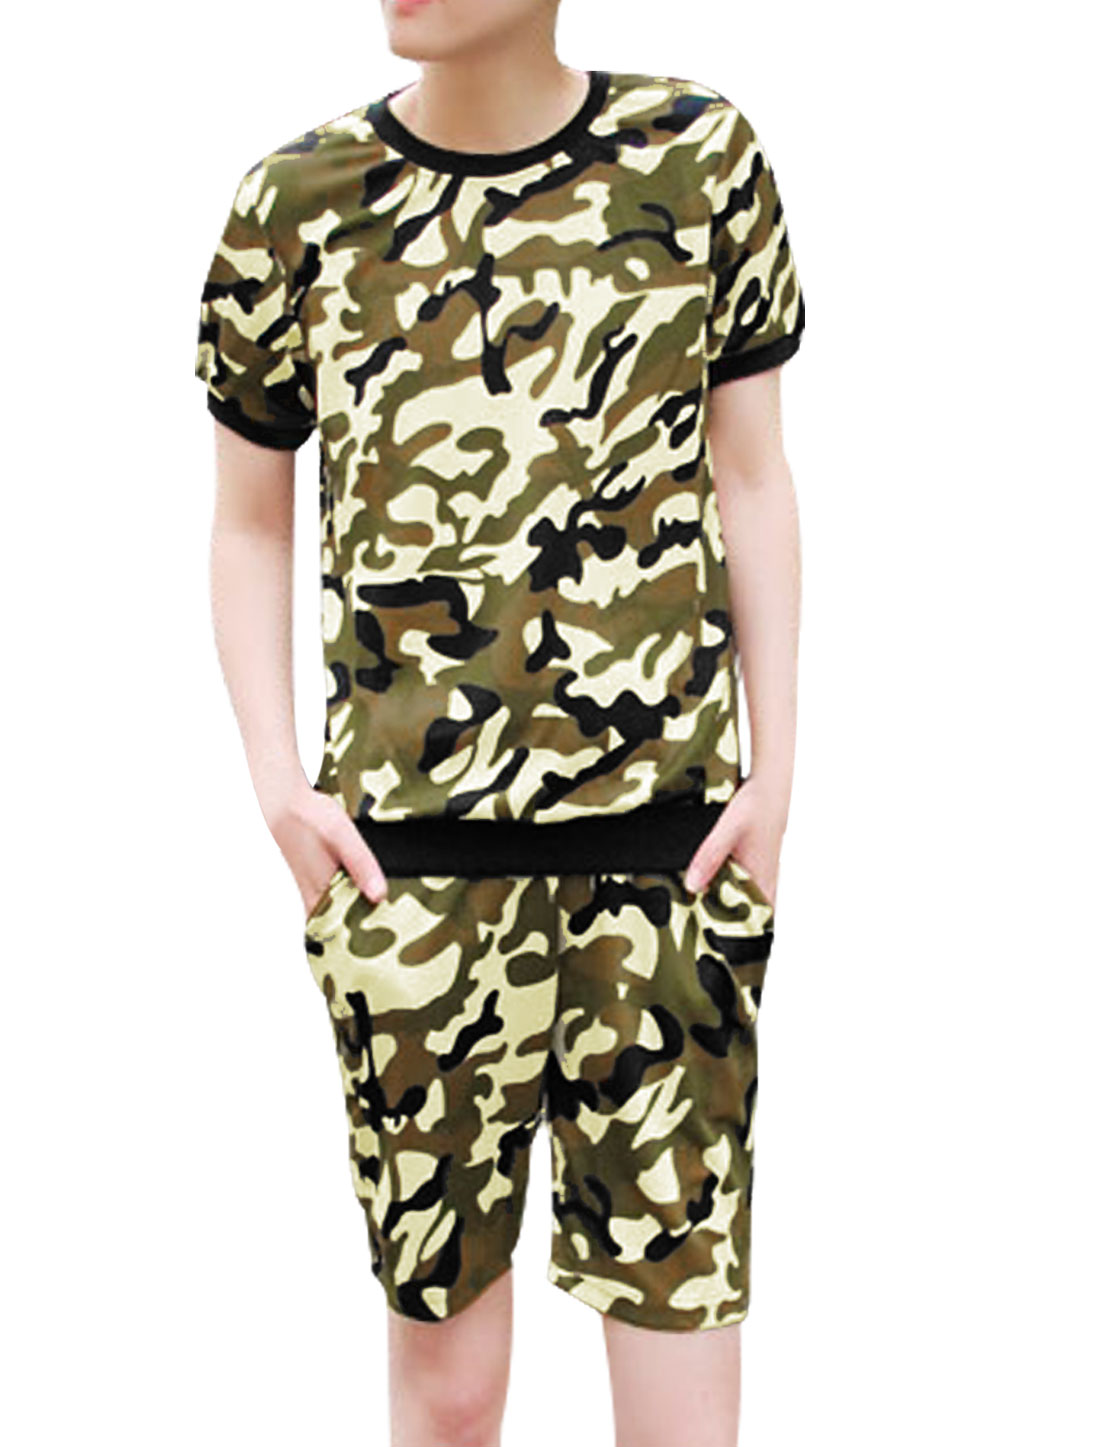 Men Camouflage Pattern Top w Ribbed Waist Shorts Beige Black S